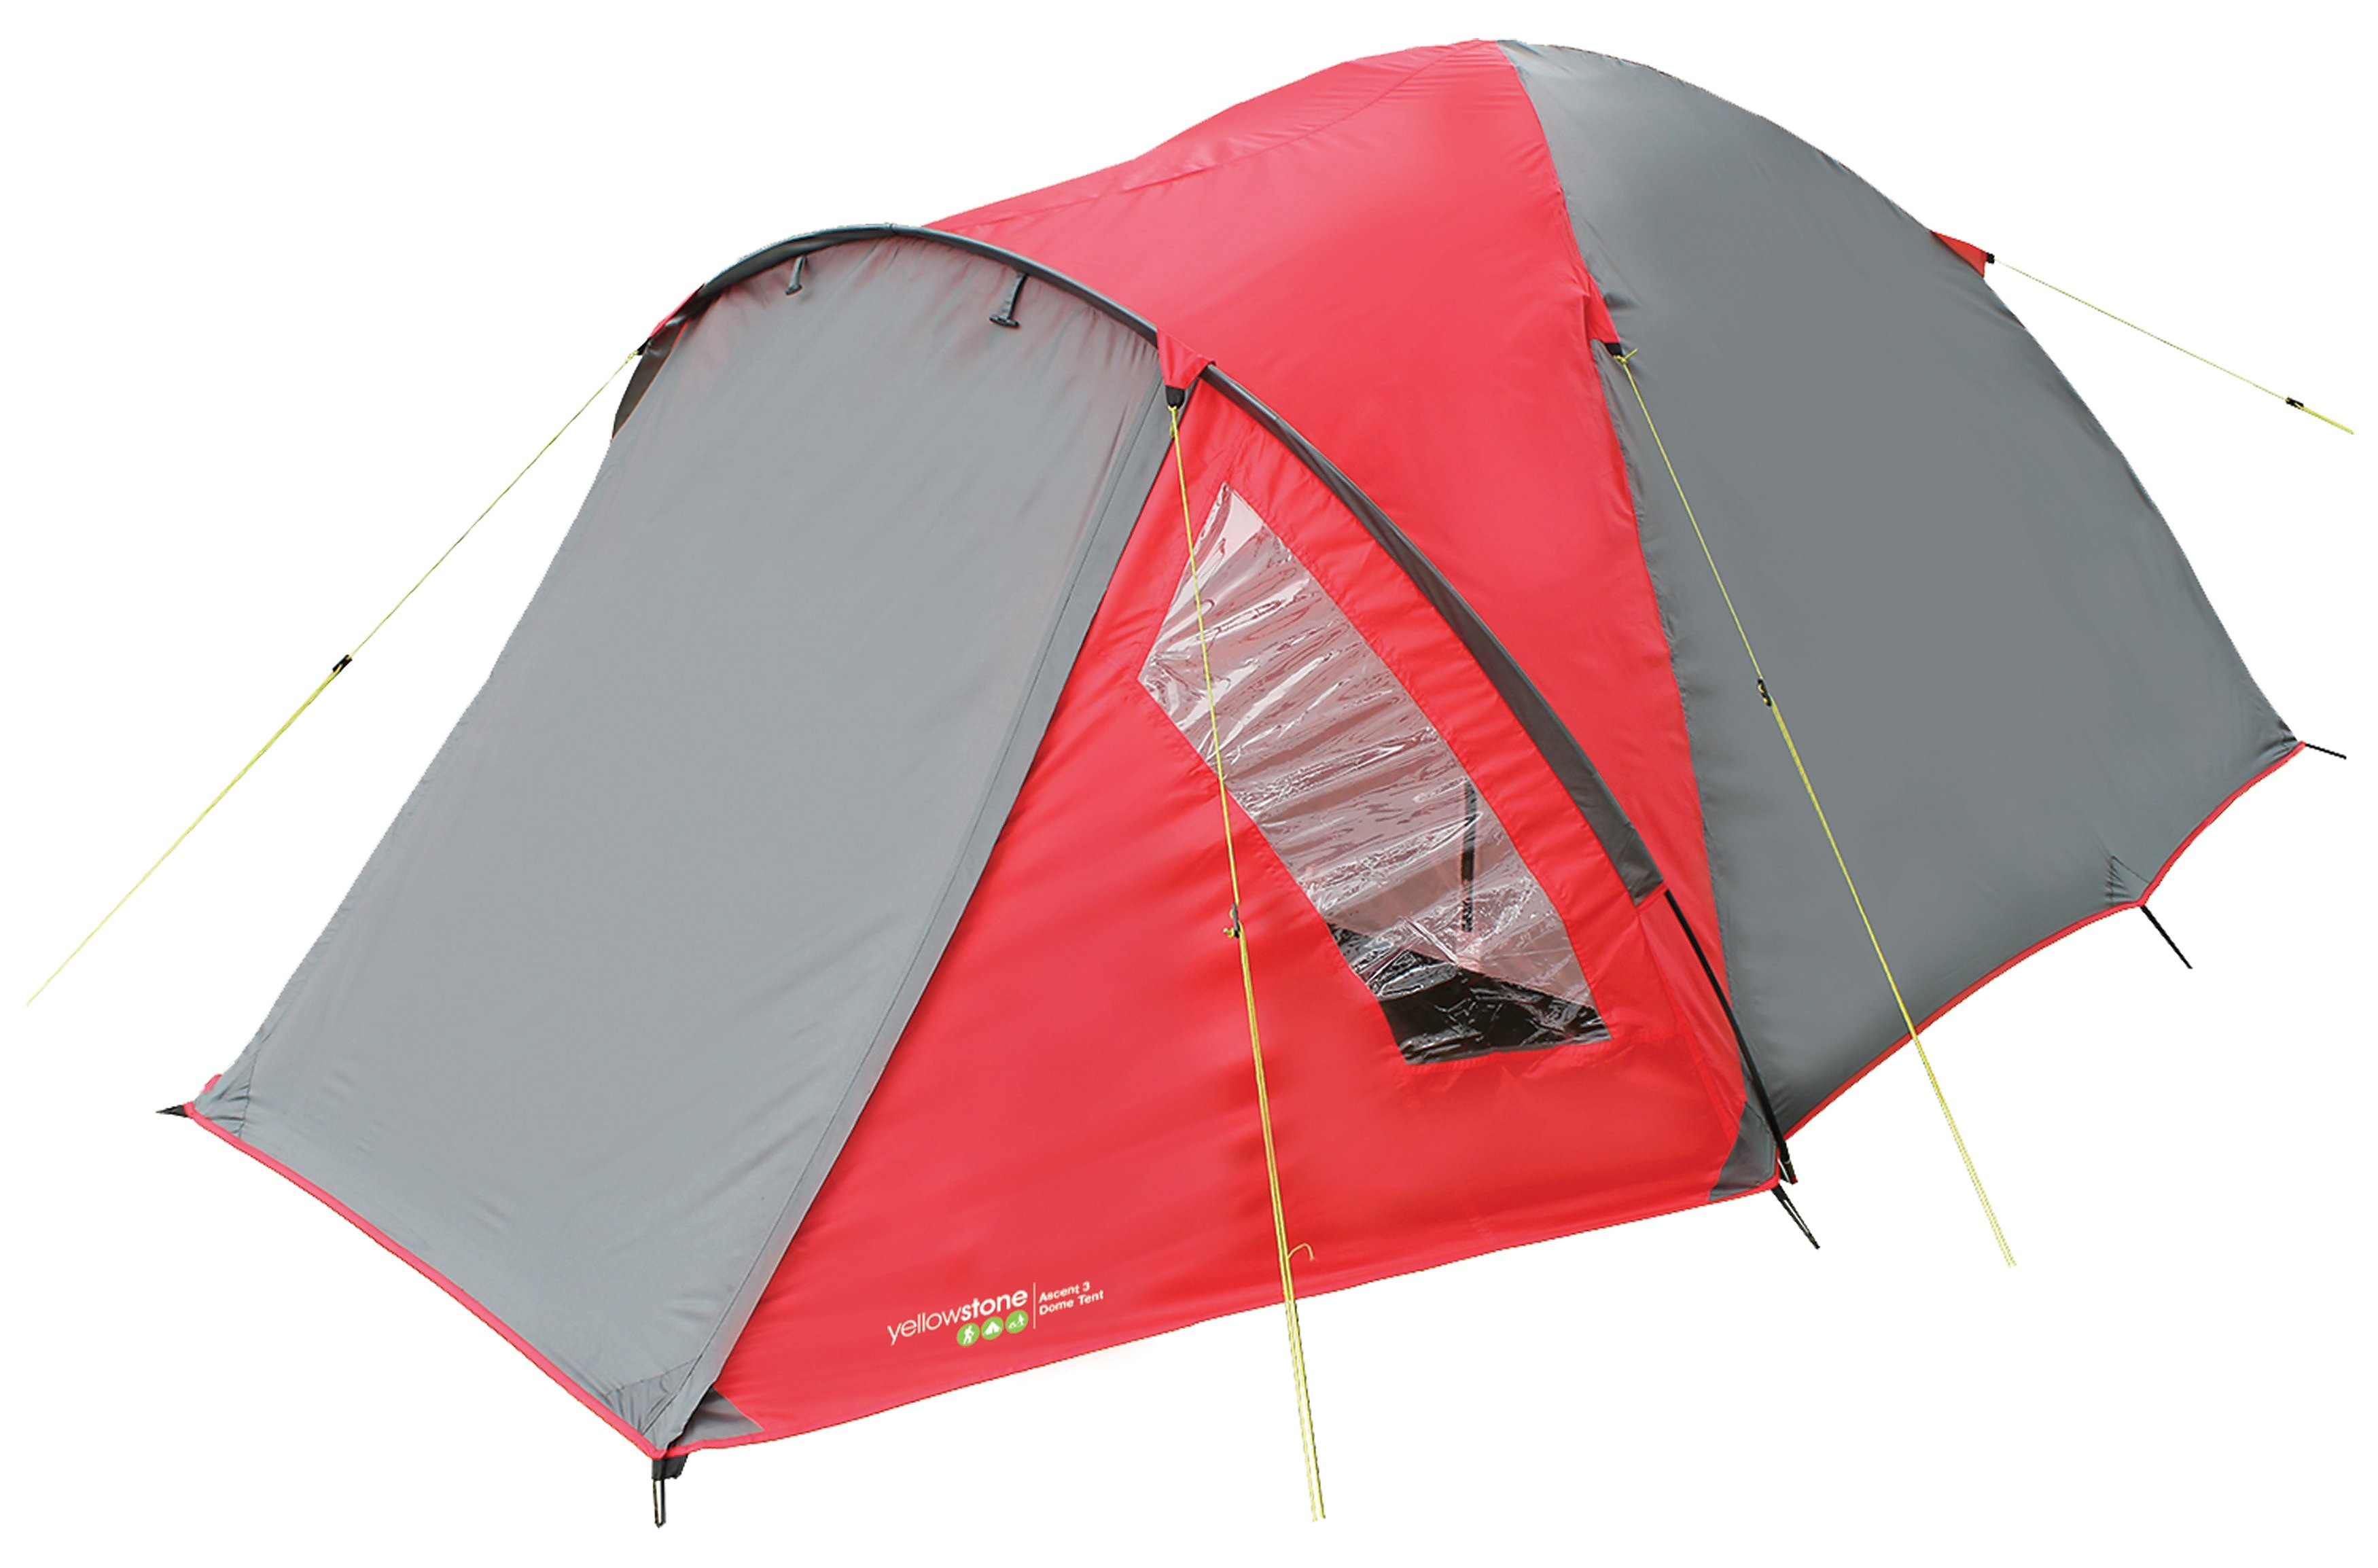 Yellowstone Ascent 3 Tent